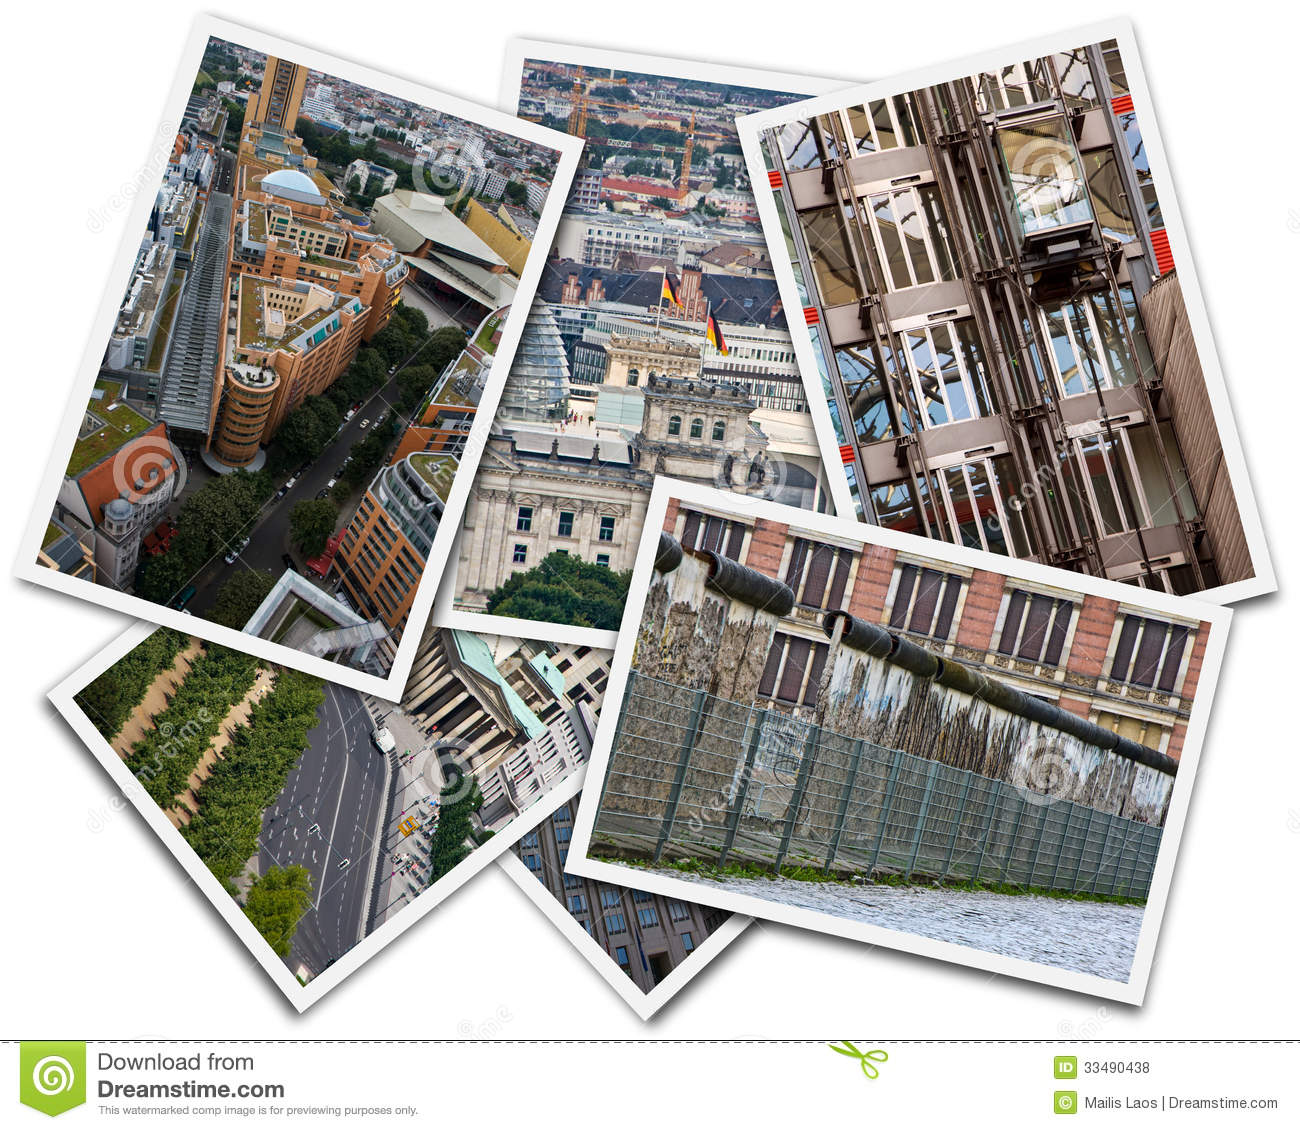 Download Berlin Collage stock photo. Image of modern, cities, germany - 33490438